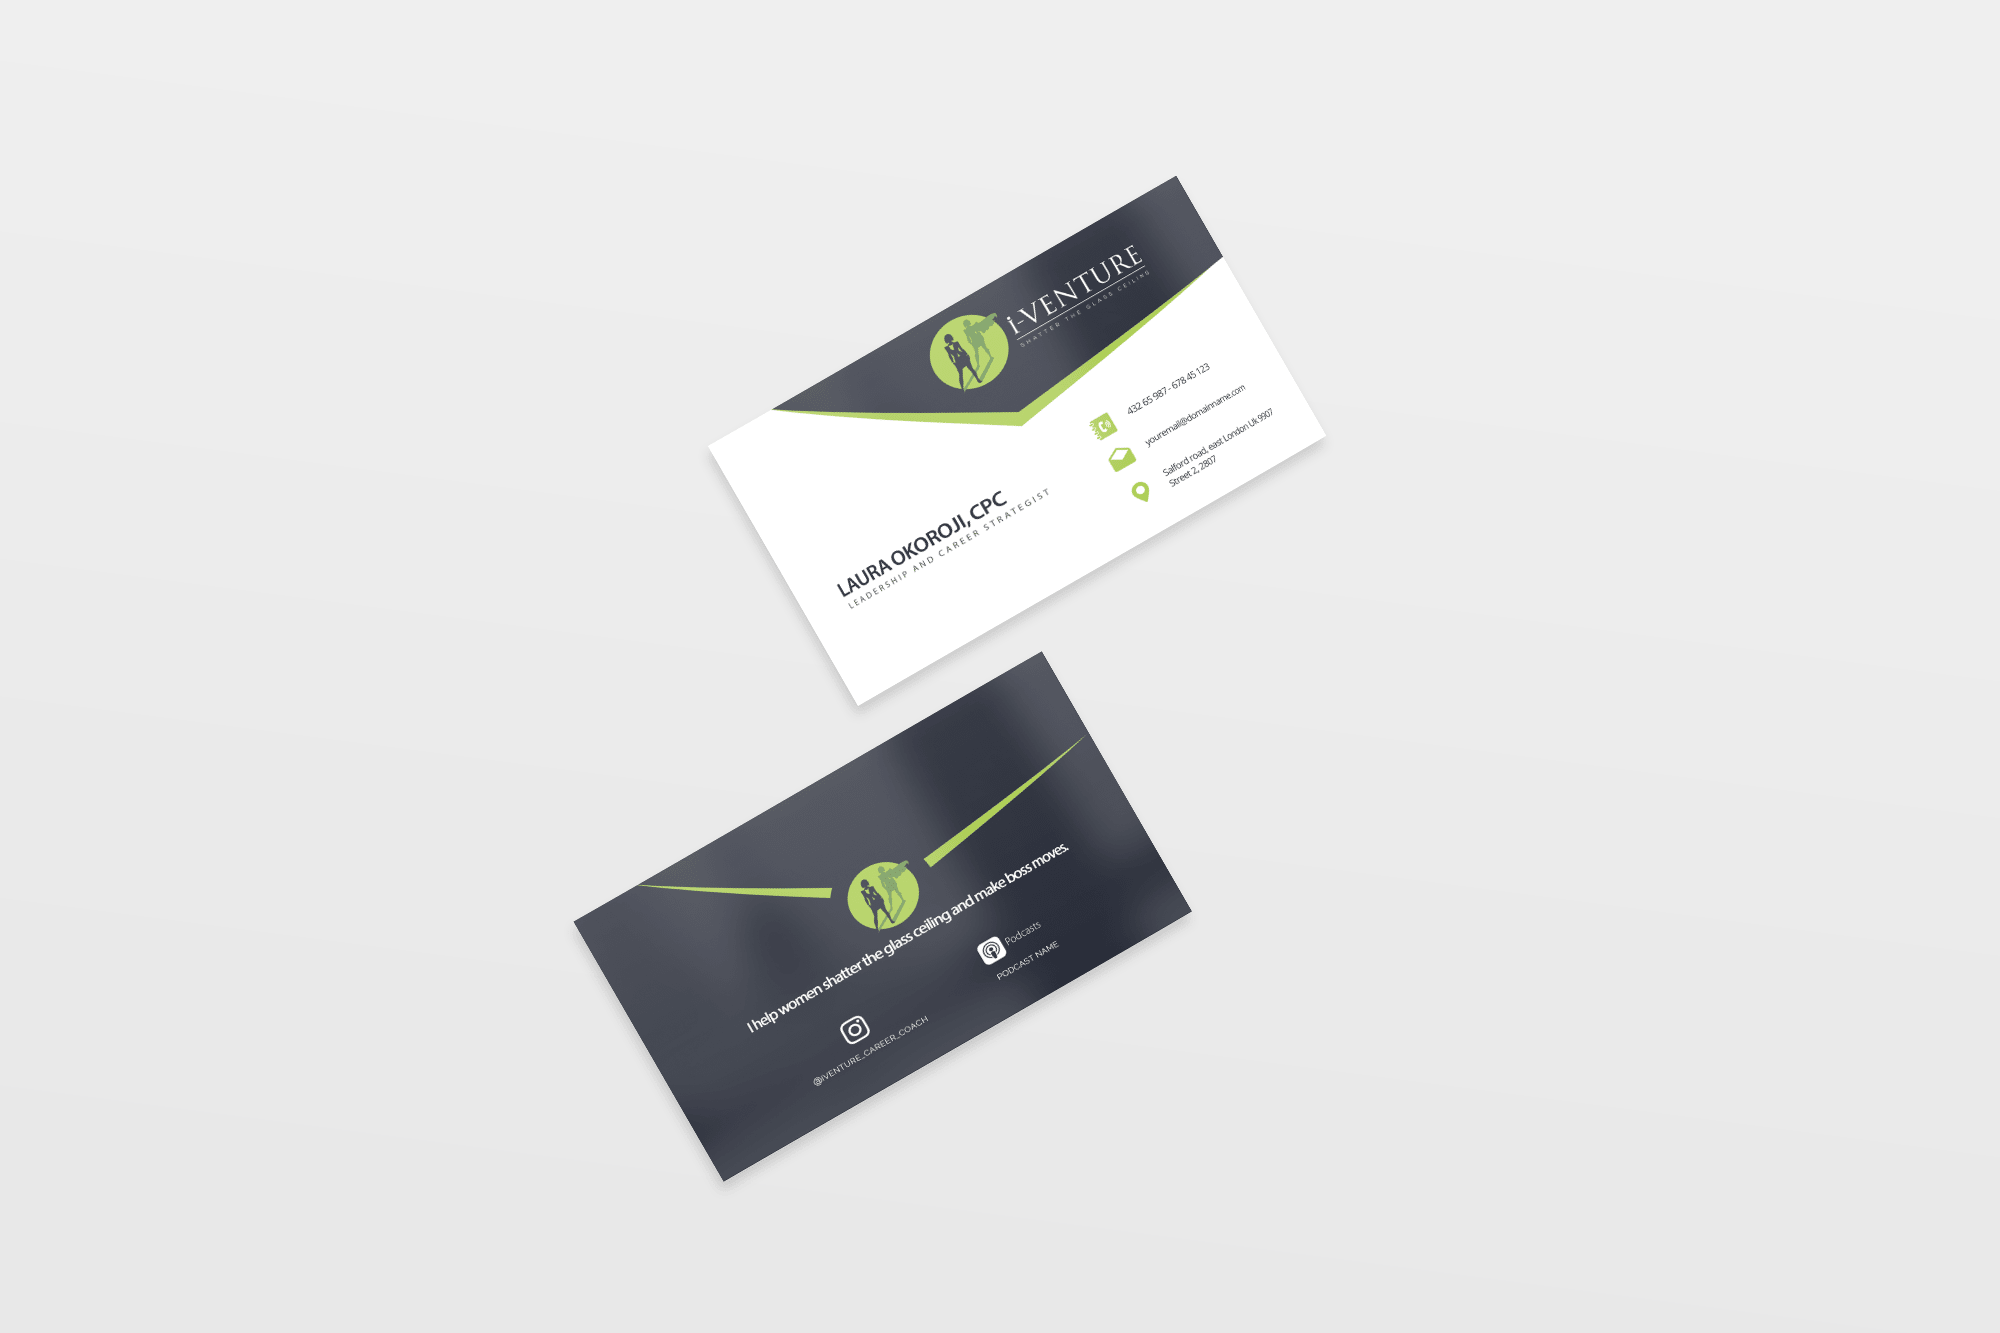 Pheelosophy - I-Venture Career Coaching Business Card Designs